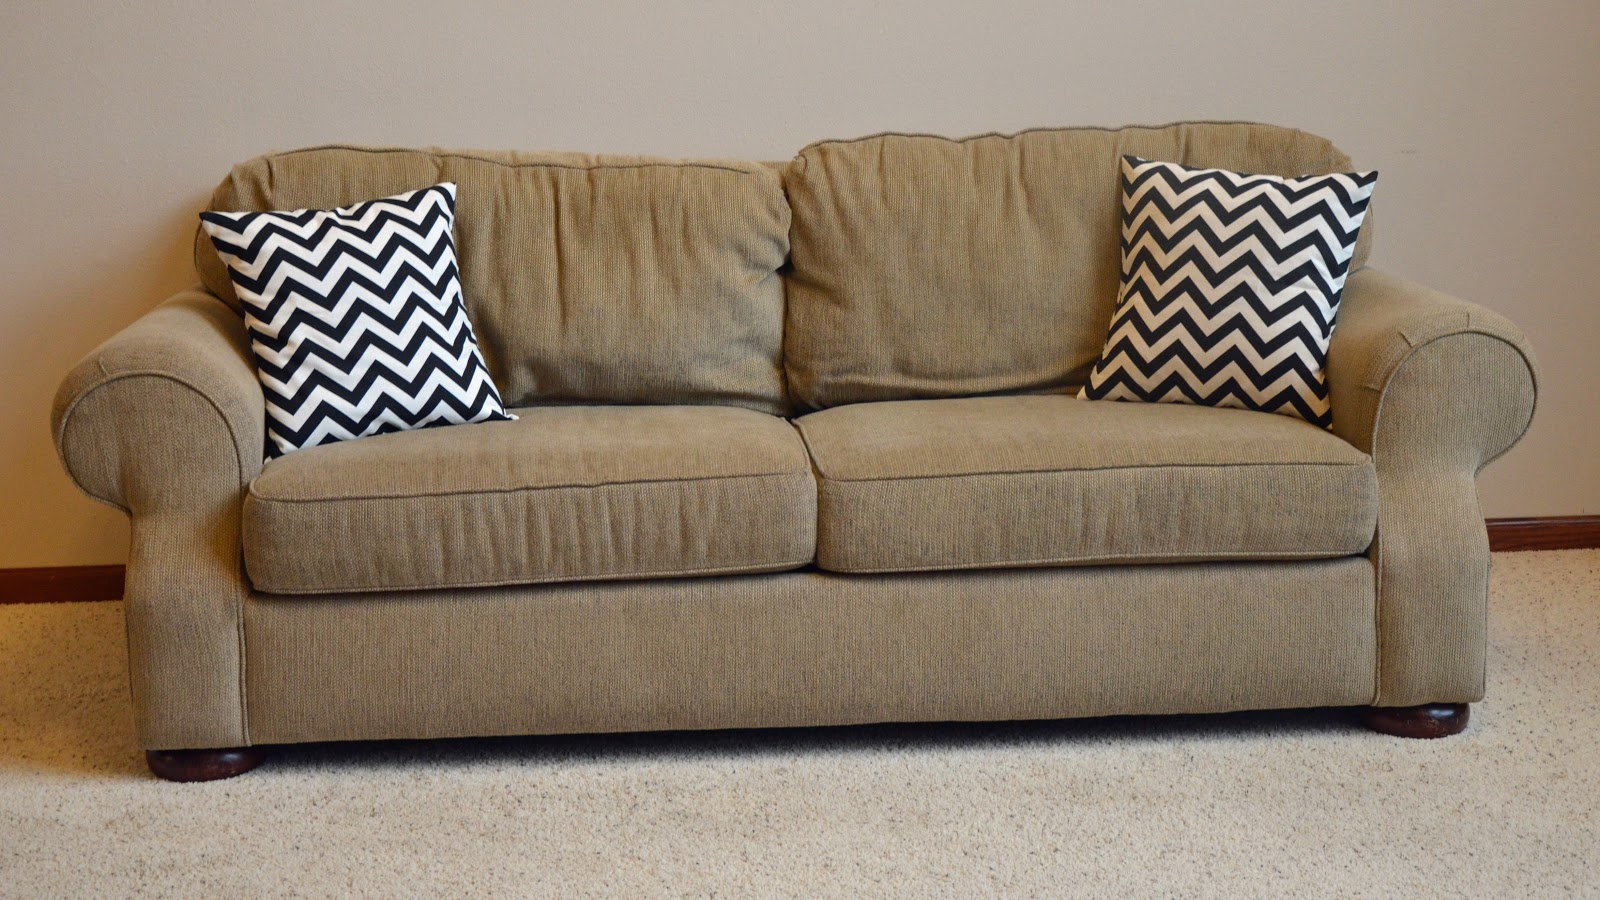 Throw Pillows For Sofa Images : Pillows For Couches On Sale Home Improvement